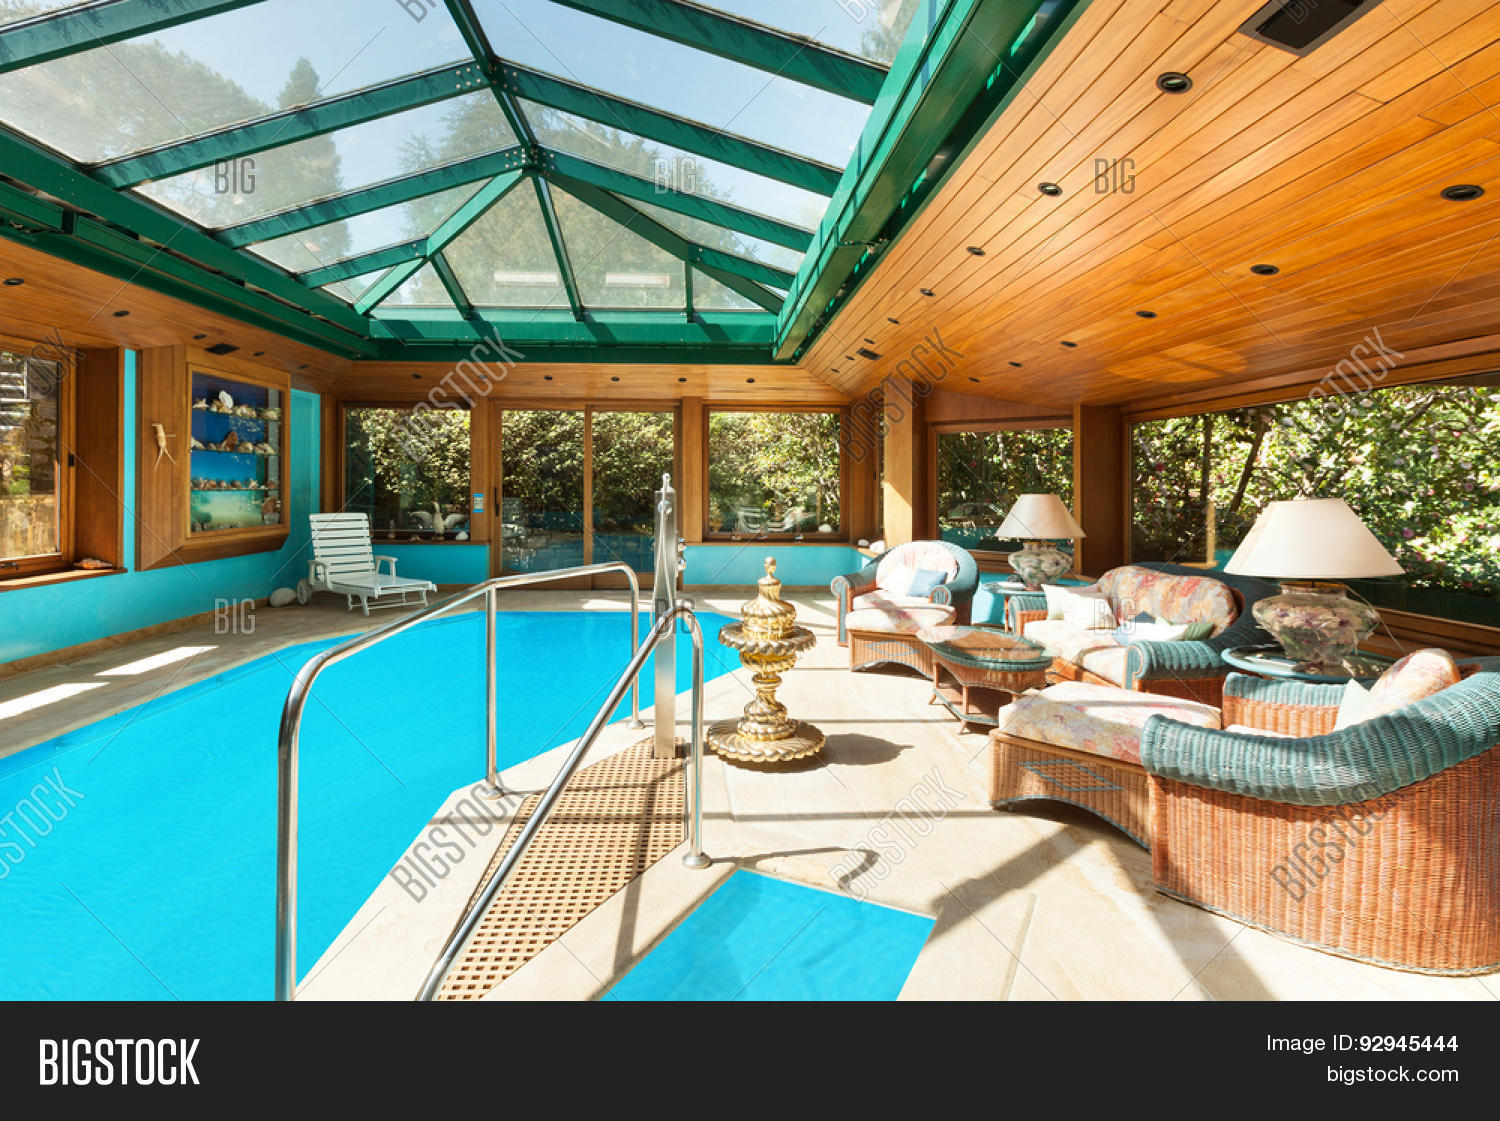 Interior residential house large image photo bigstock for Large skylights